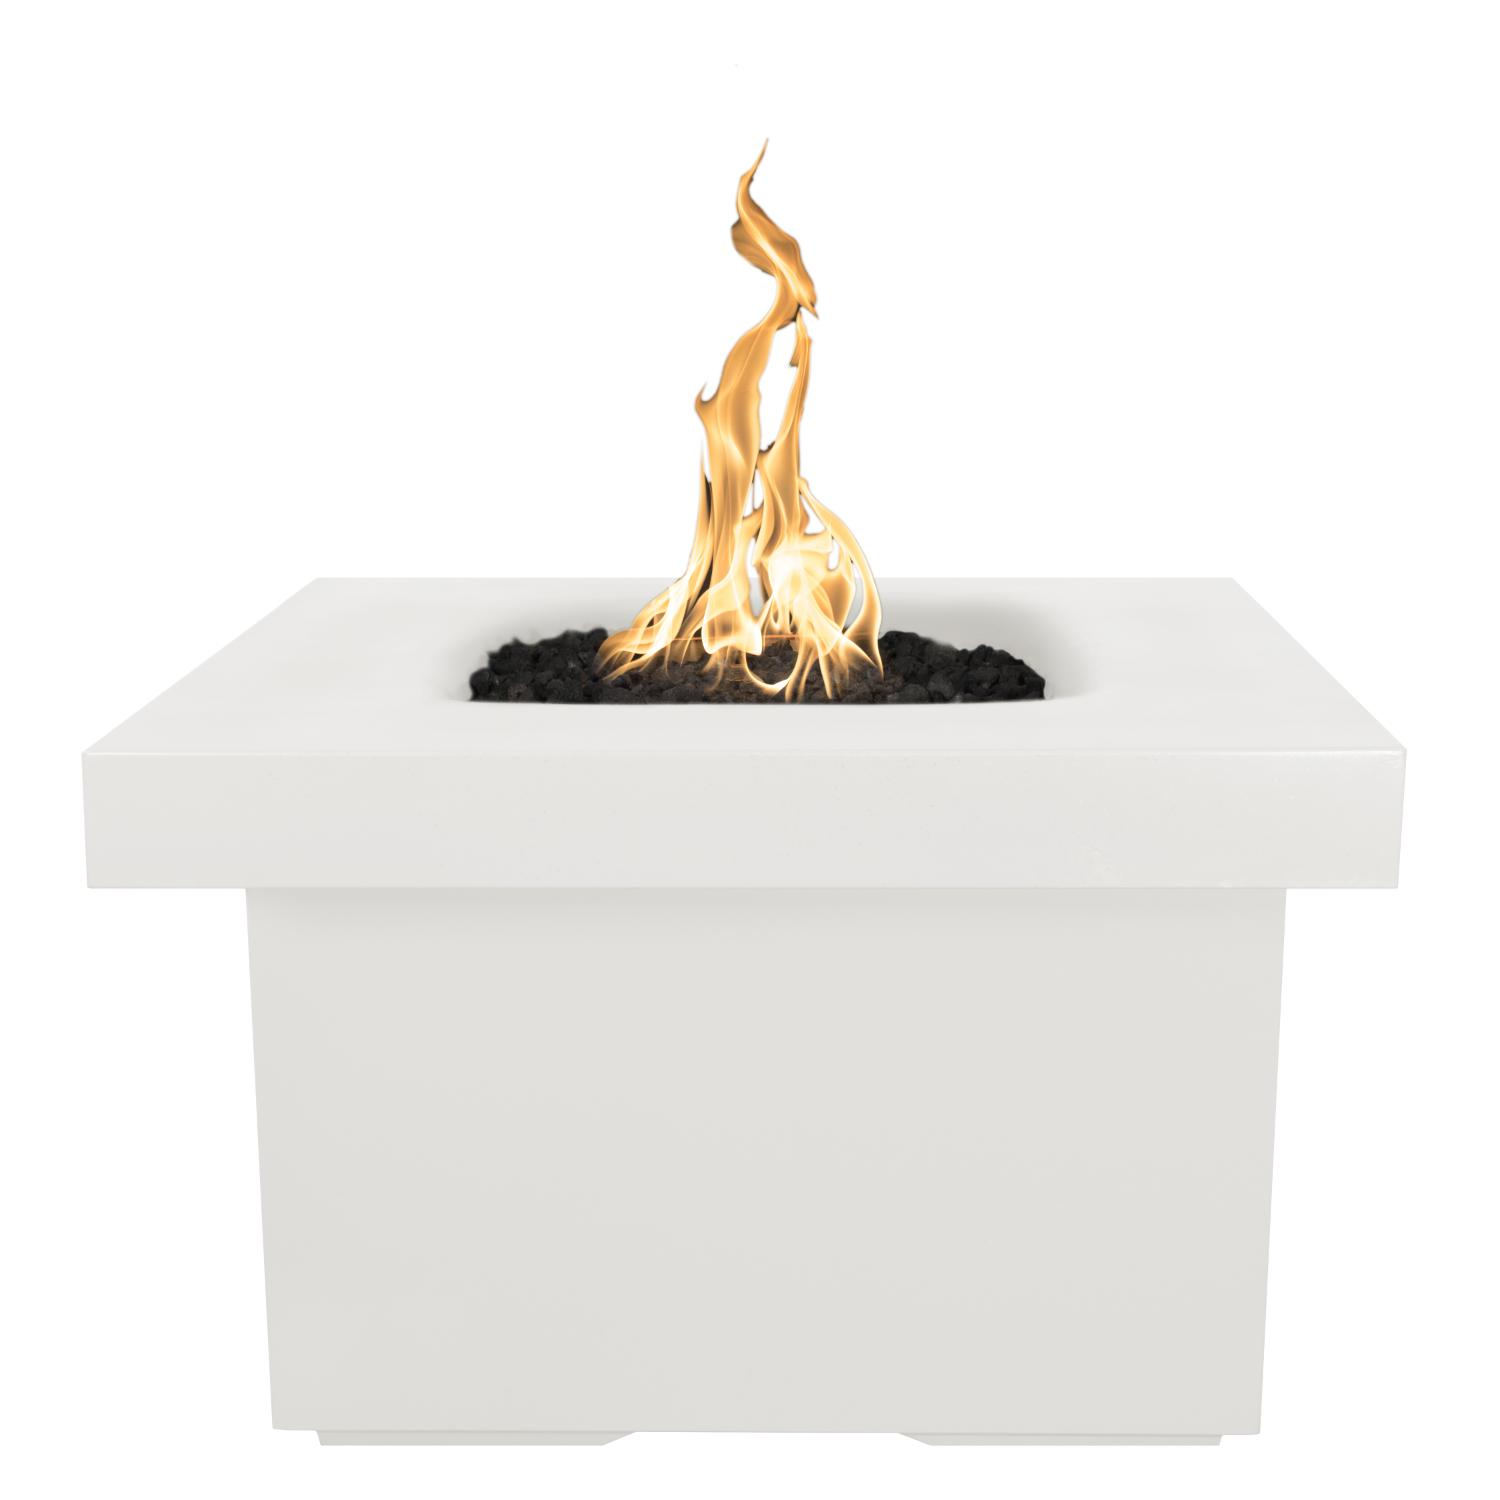 The Outdoor Plus Top Fires by Ramona 36 Natural Gas Fire Table - Limestone Concrete - Match Light - OPT-RMNSQ36-LIM-NG